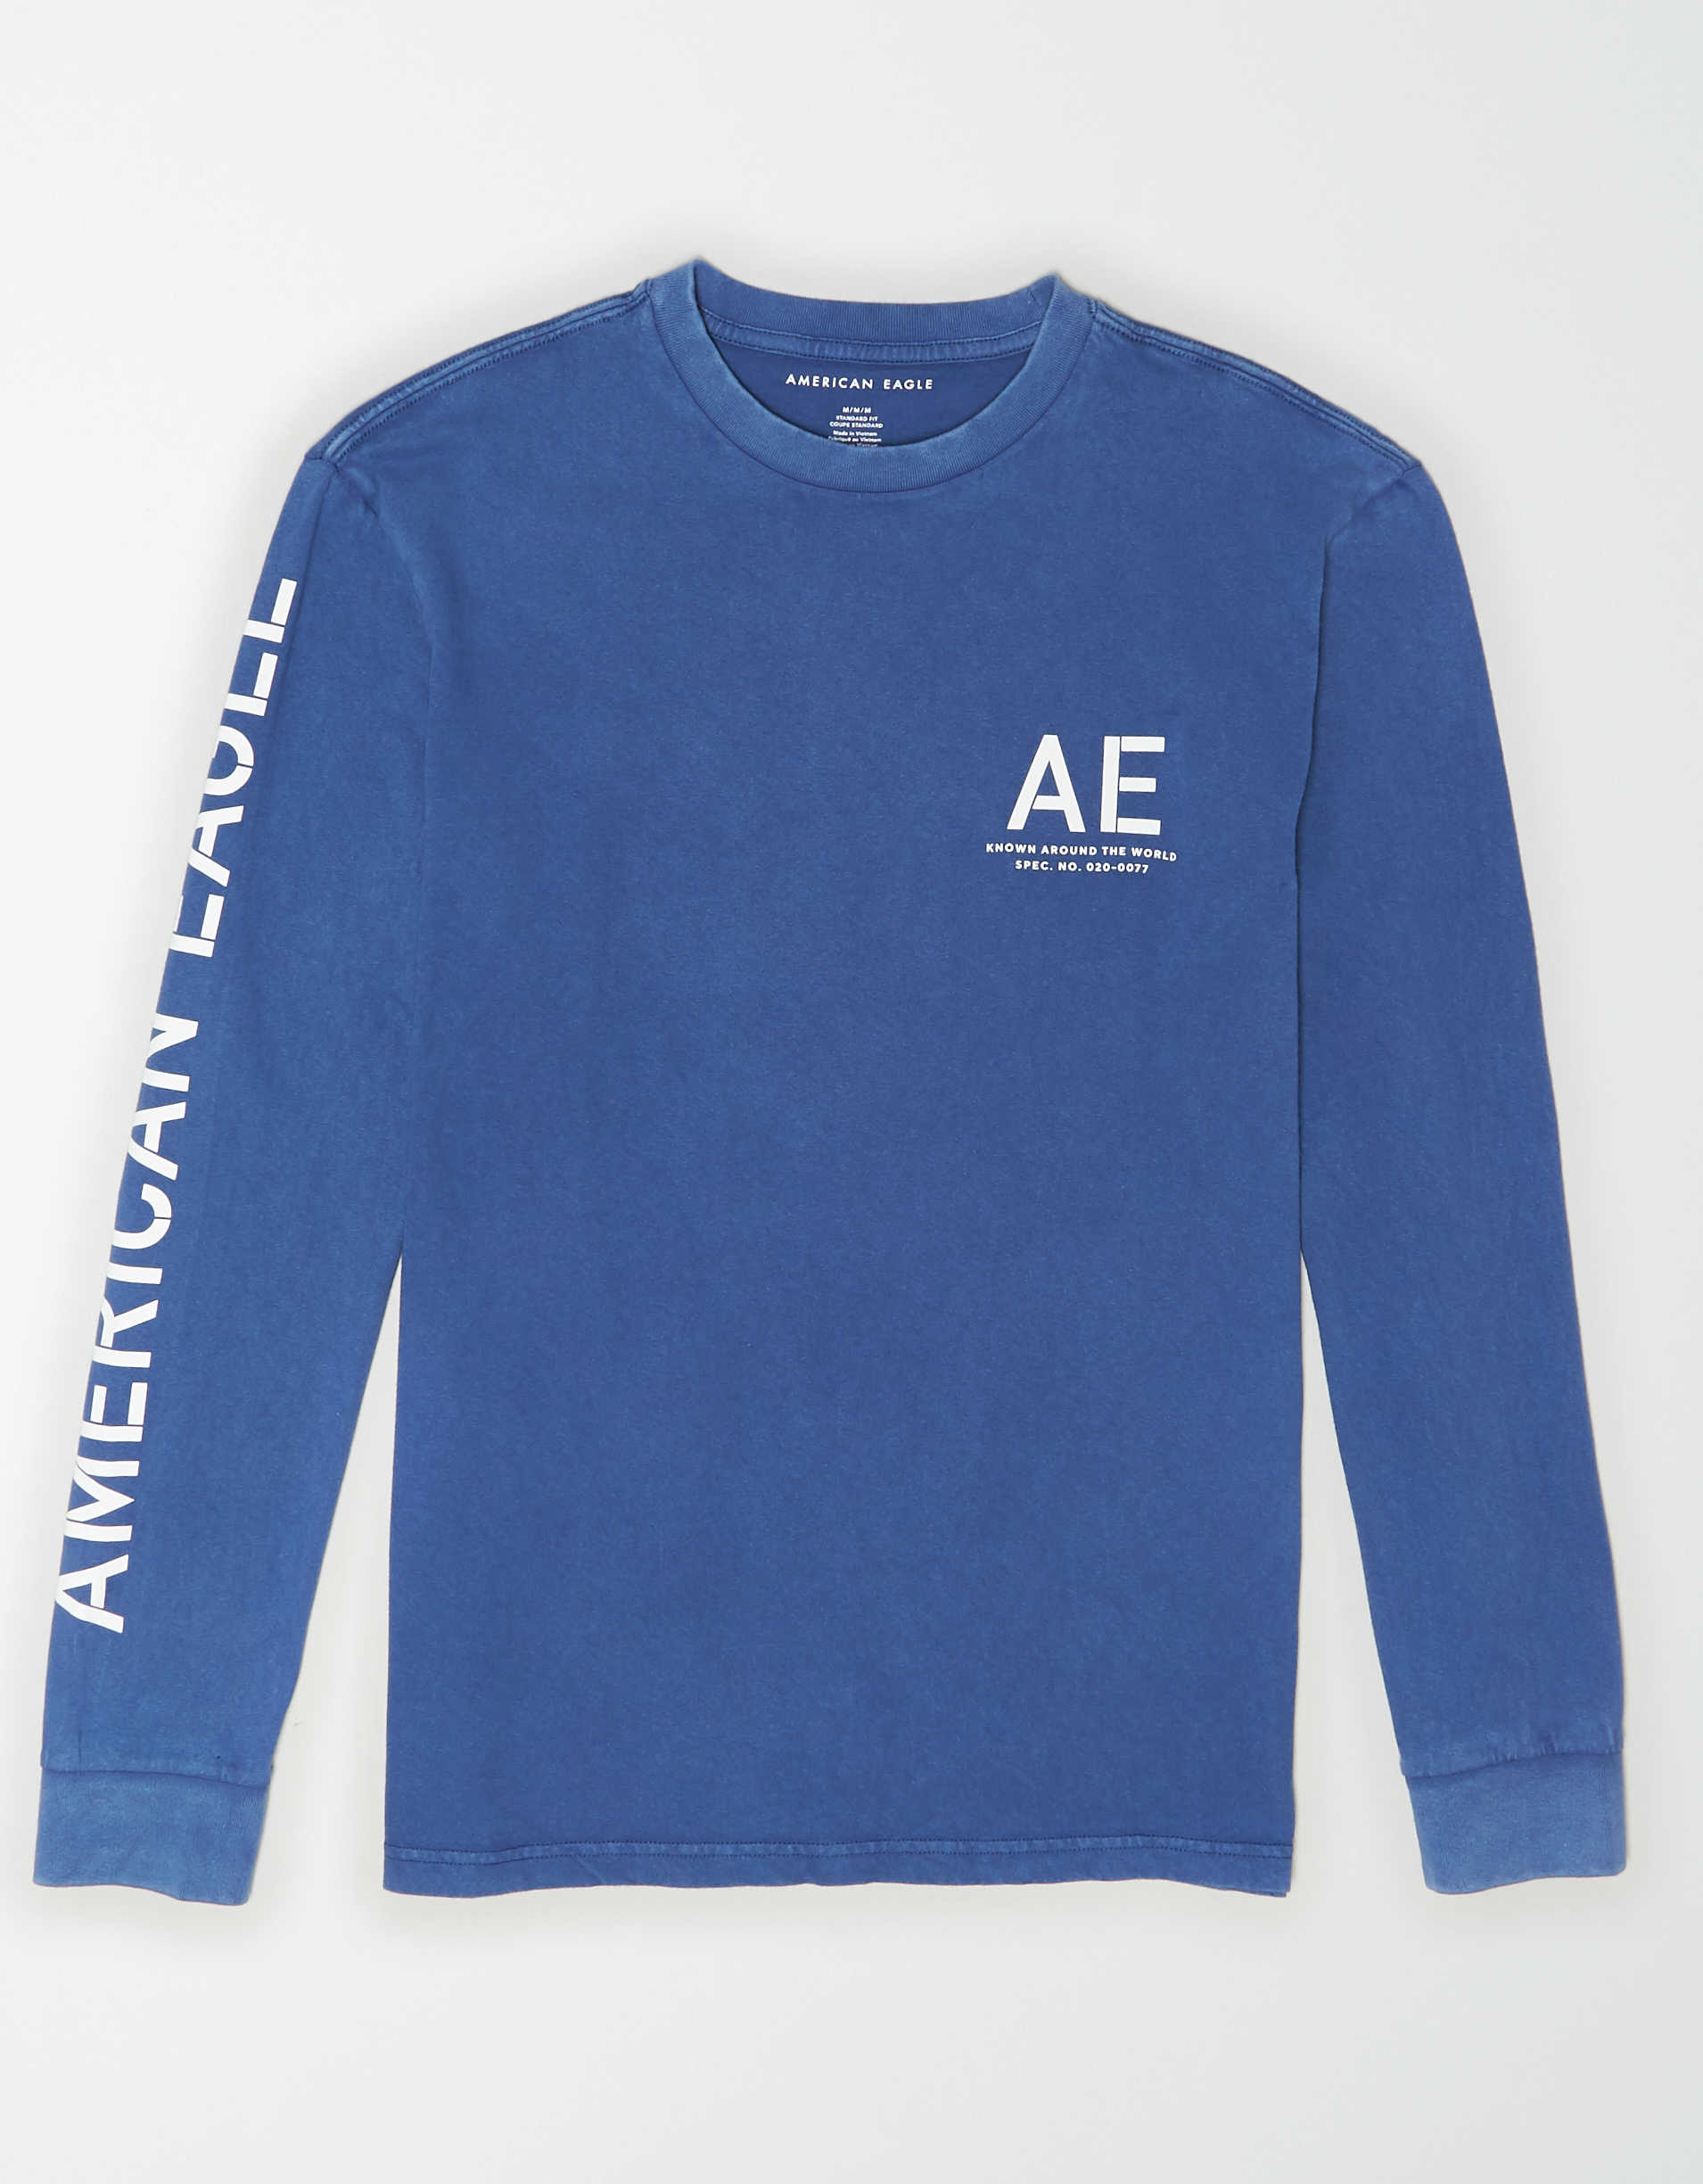 AE Long-Sleeve Graphic T-Shirt